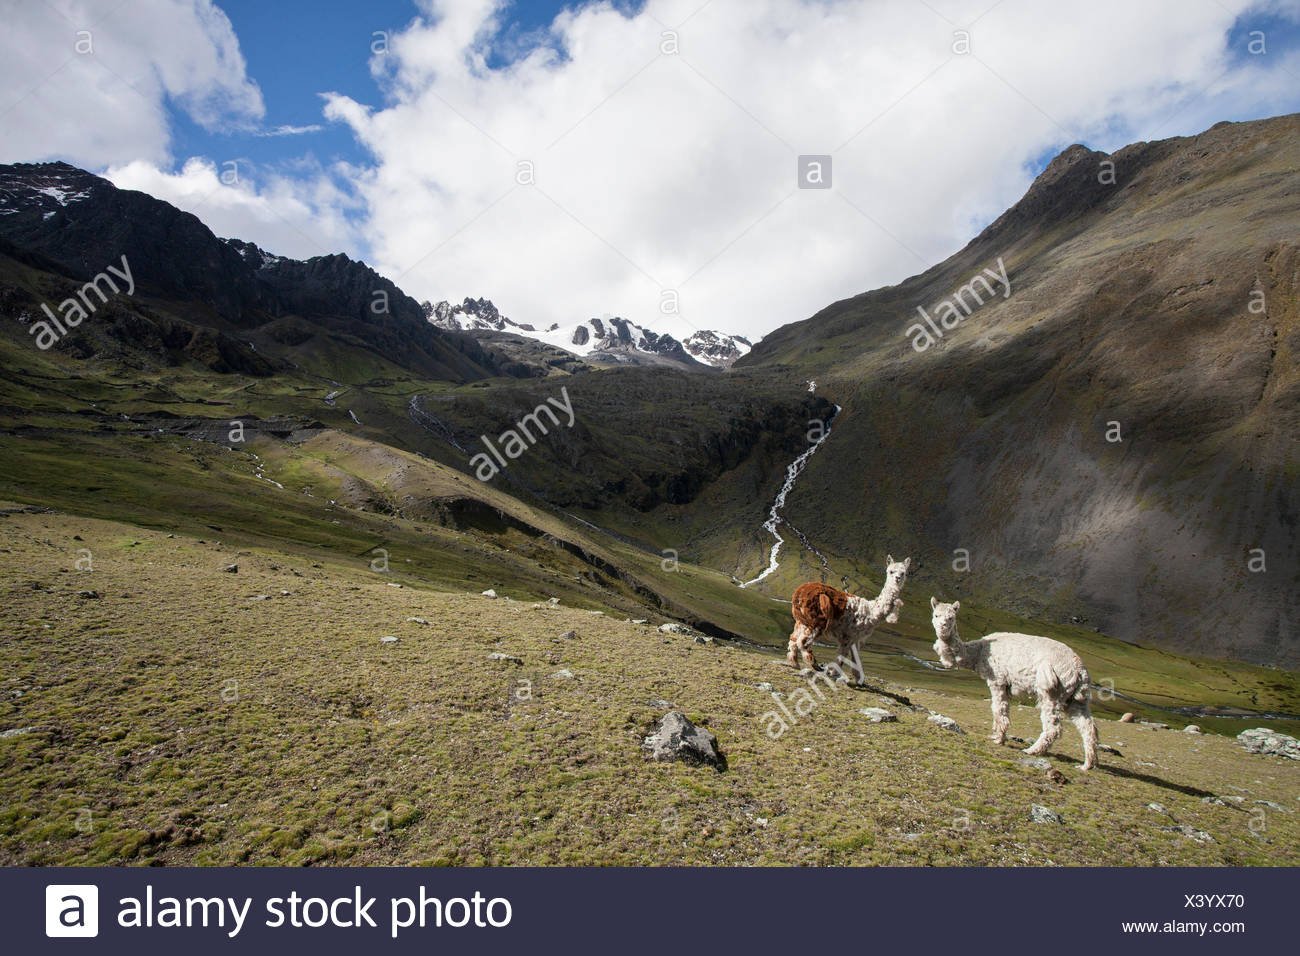 Two alpacas, Lama pacos, in an alpine pasture in the Andes Mountains, near the Interoceanic Highway. - Stock Image